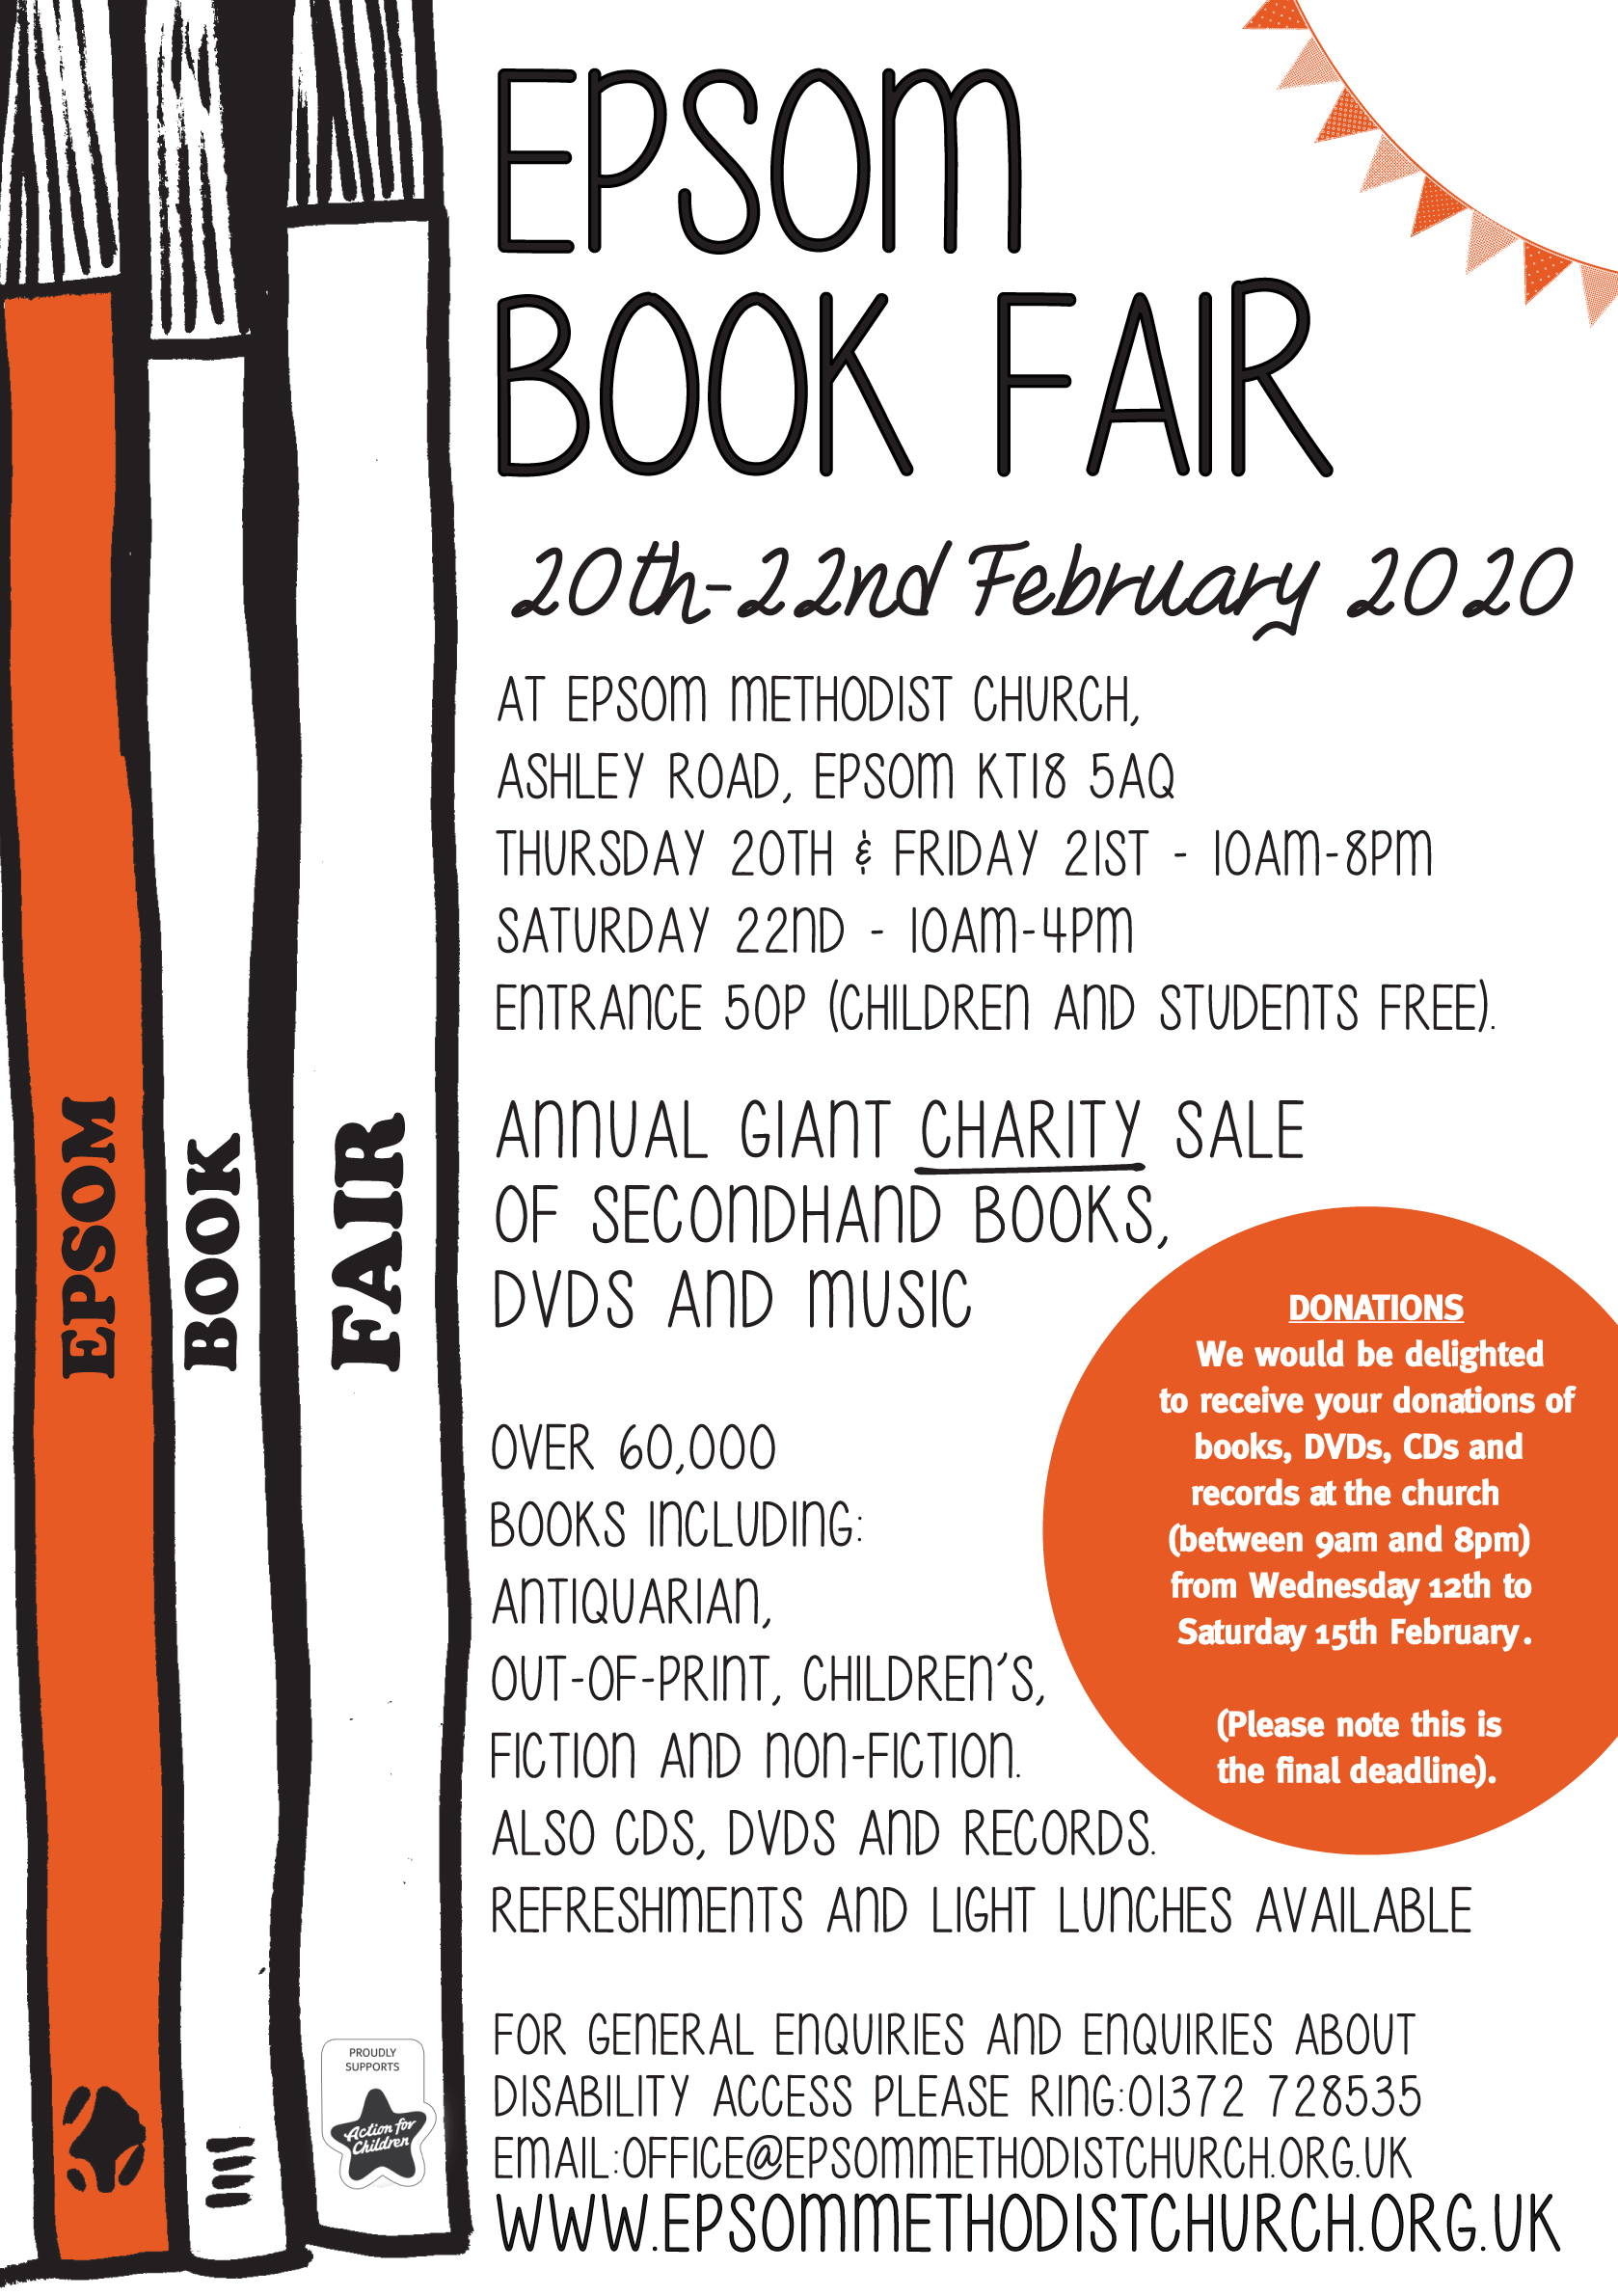 Epsom book fair 2020